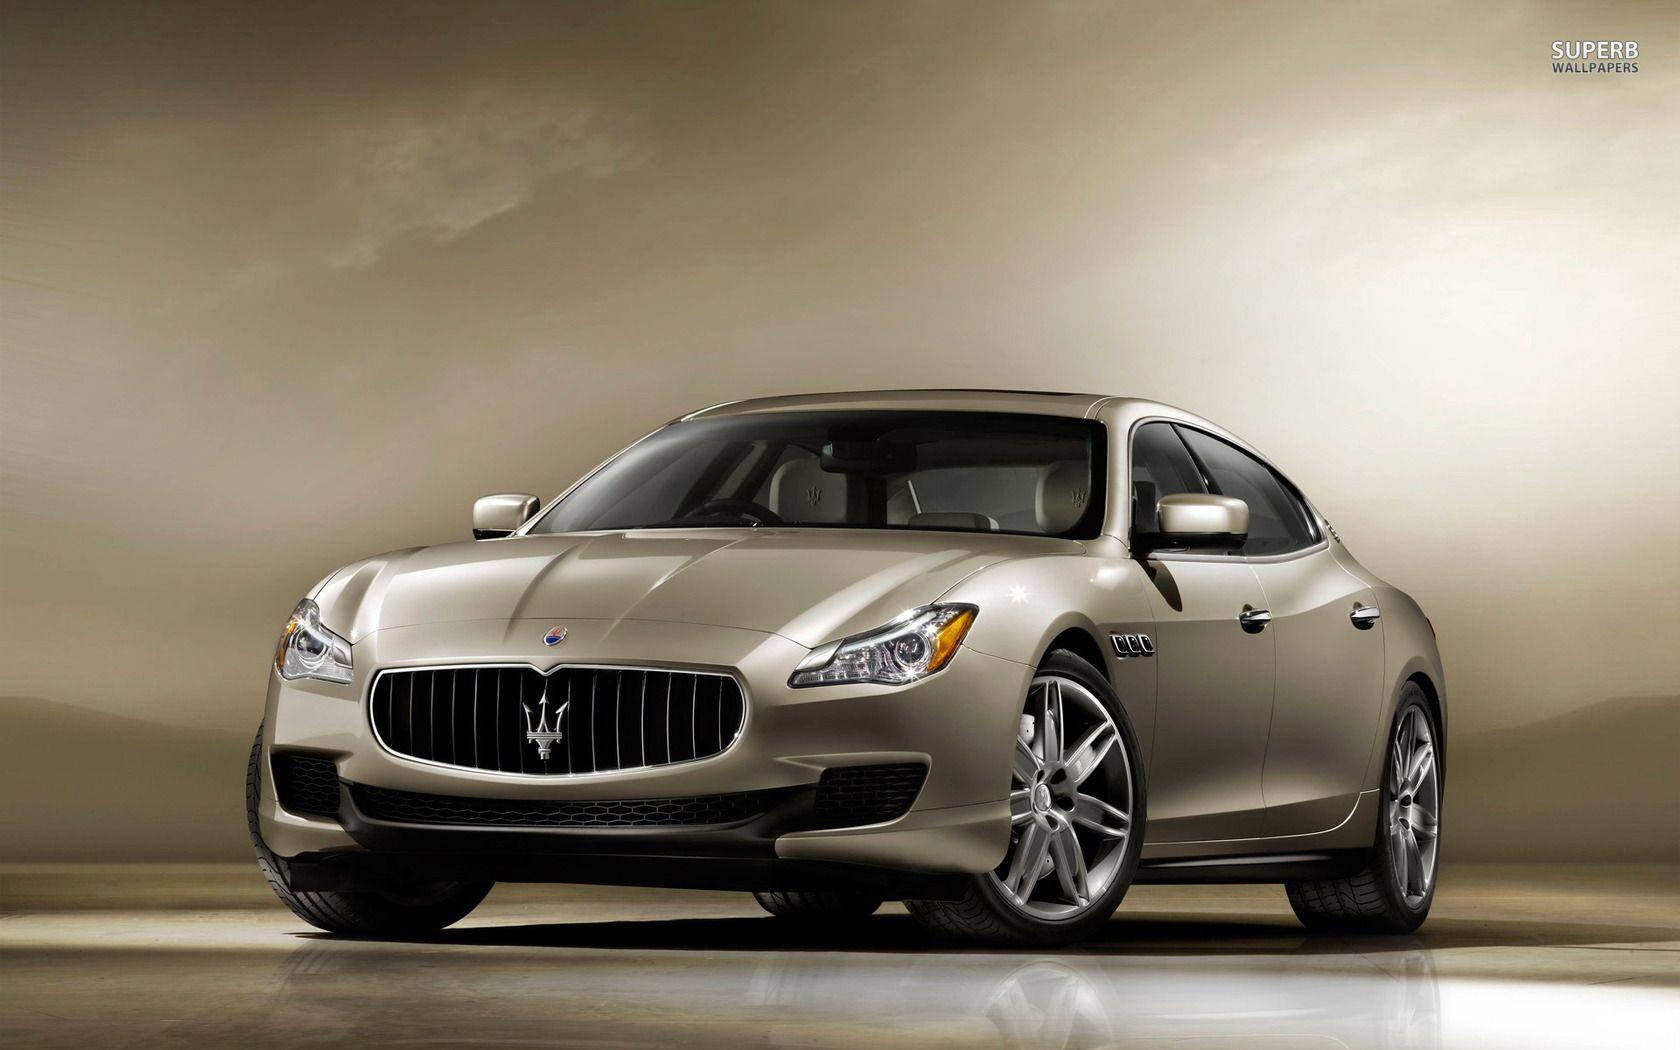 Maserati Quattroporte Wallpapers Group with 55 items